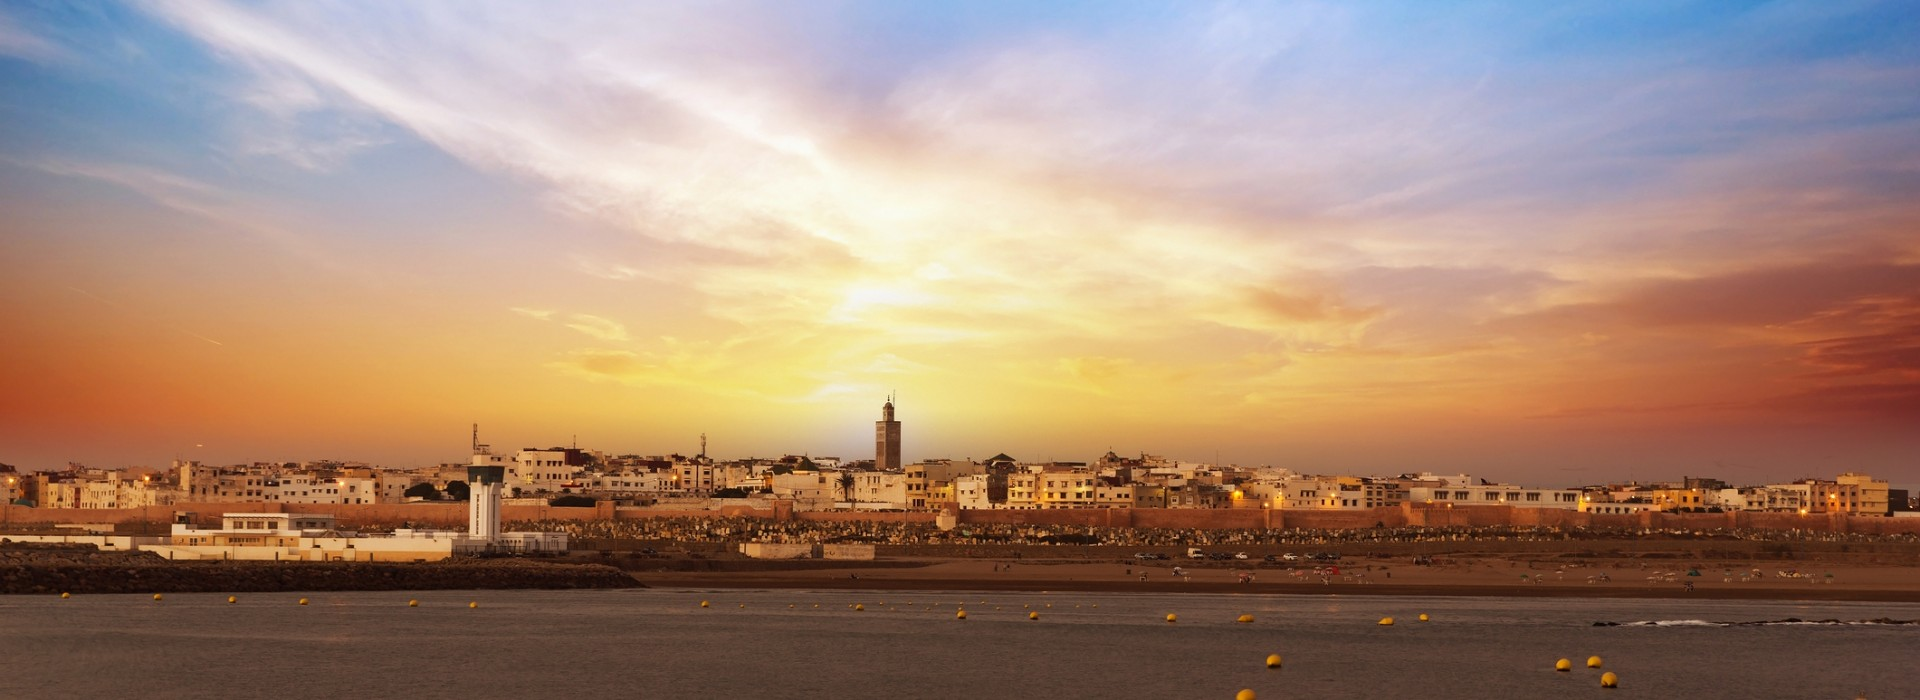 Morocco is an exotic country that never stops amazing you with its sights and surrounds. From ancient towns to chaotic cities, from remote villages to gorgeous coast